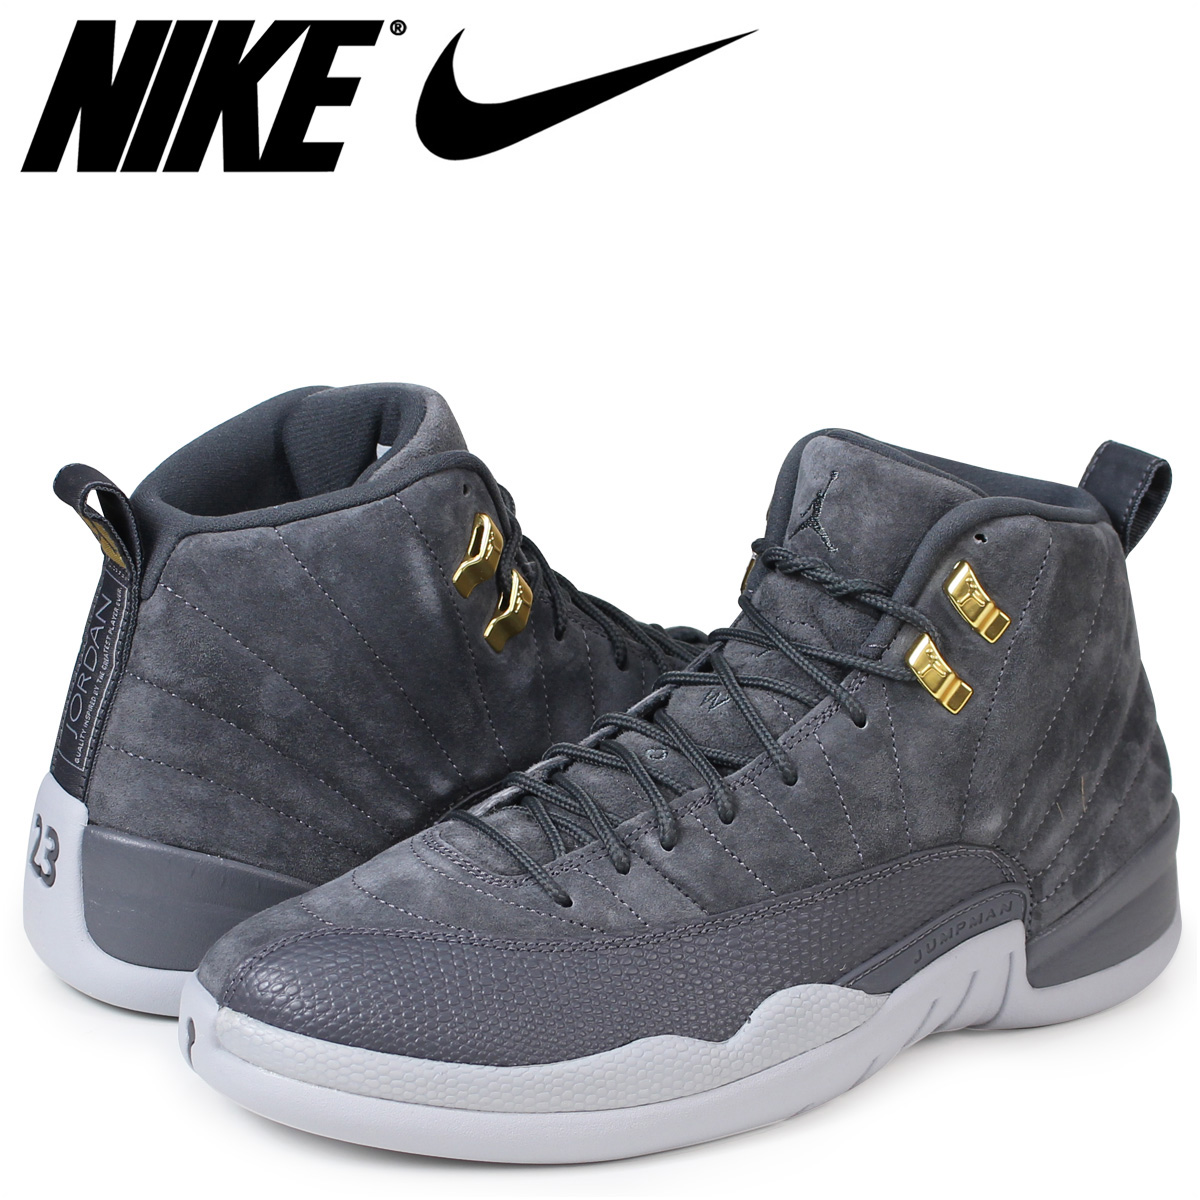 buy popular 8d389 aff3a NIKE AIR JORDAN 12 RETRO Nike Air Jordan 12 sneakers nostalgic men gray  130,690-005